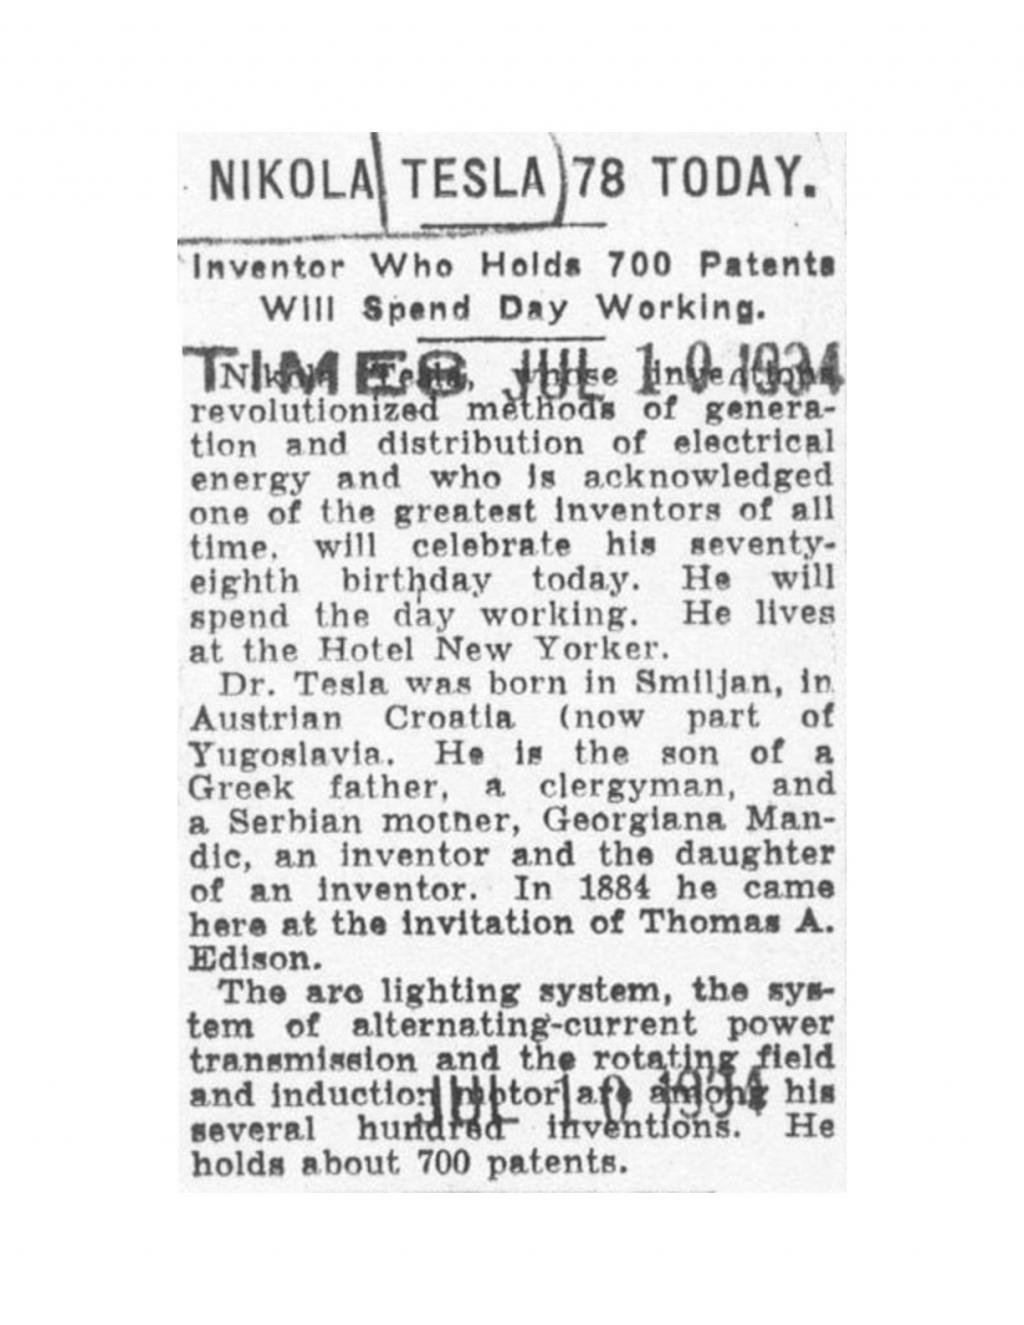 Preview of Nikola Tesla 78 Today article